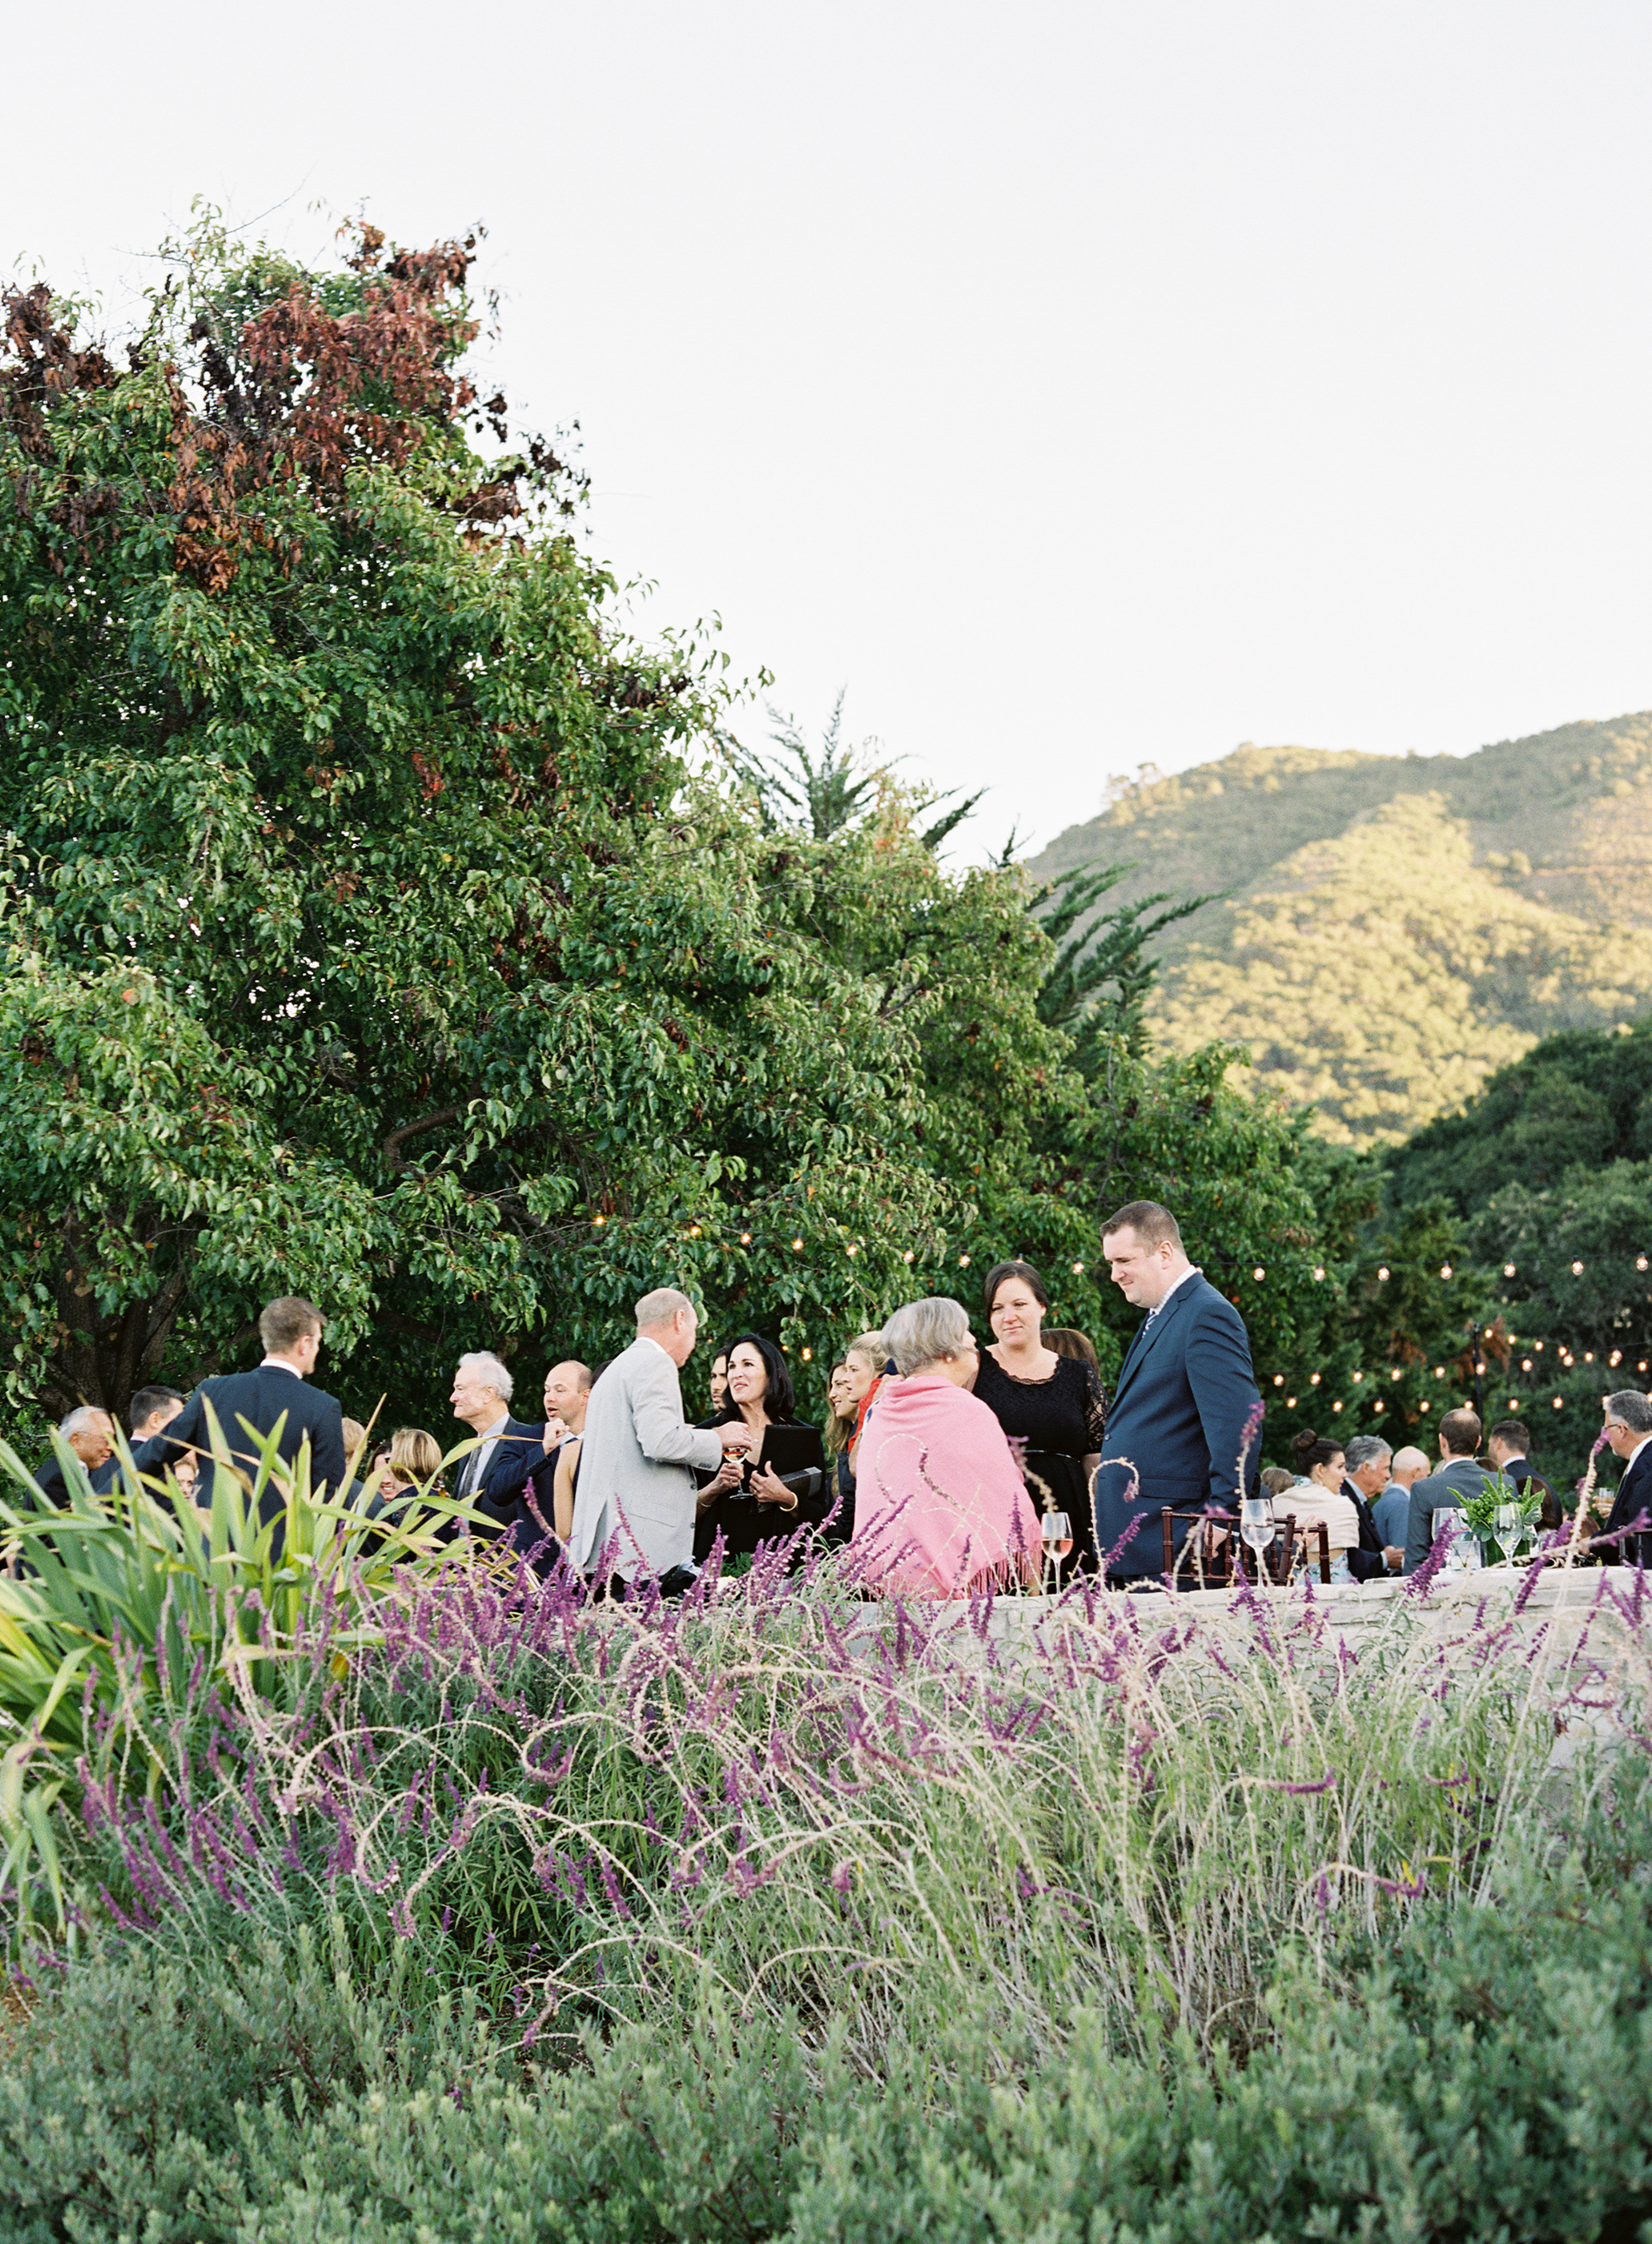 Meghan Mehan Photography - Carmel Valley Ranch Wedding 032.jpg